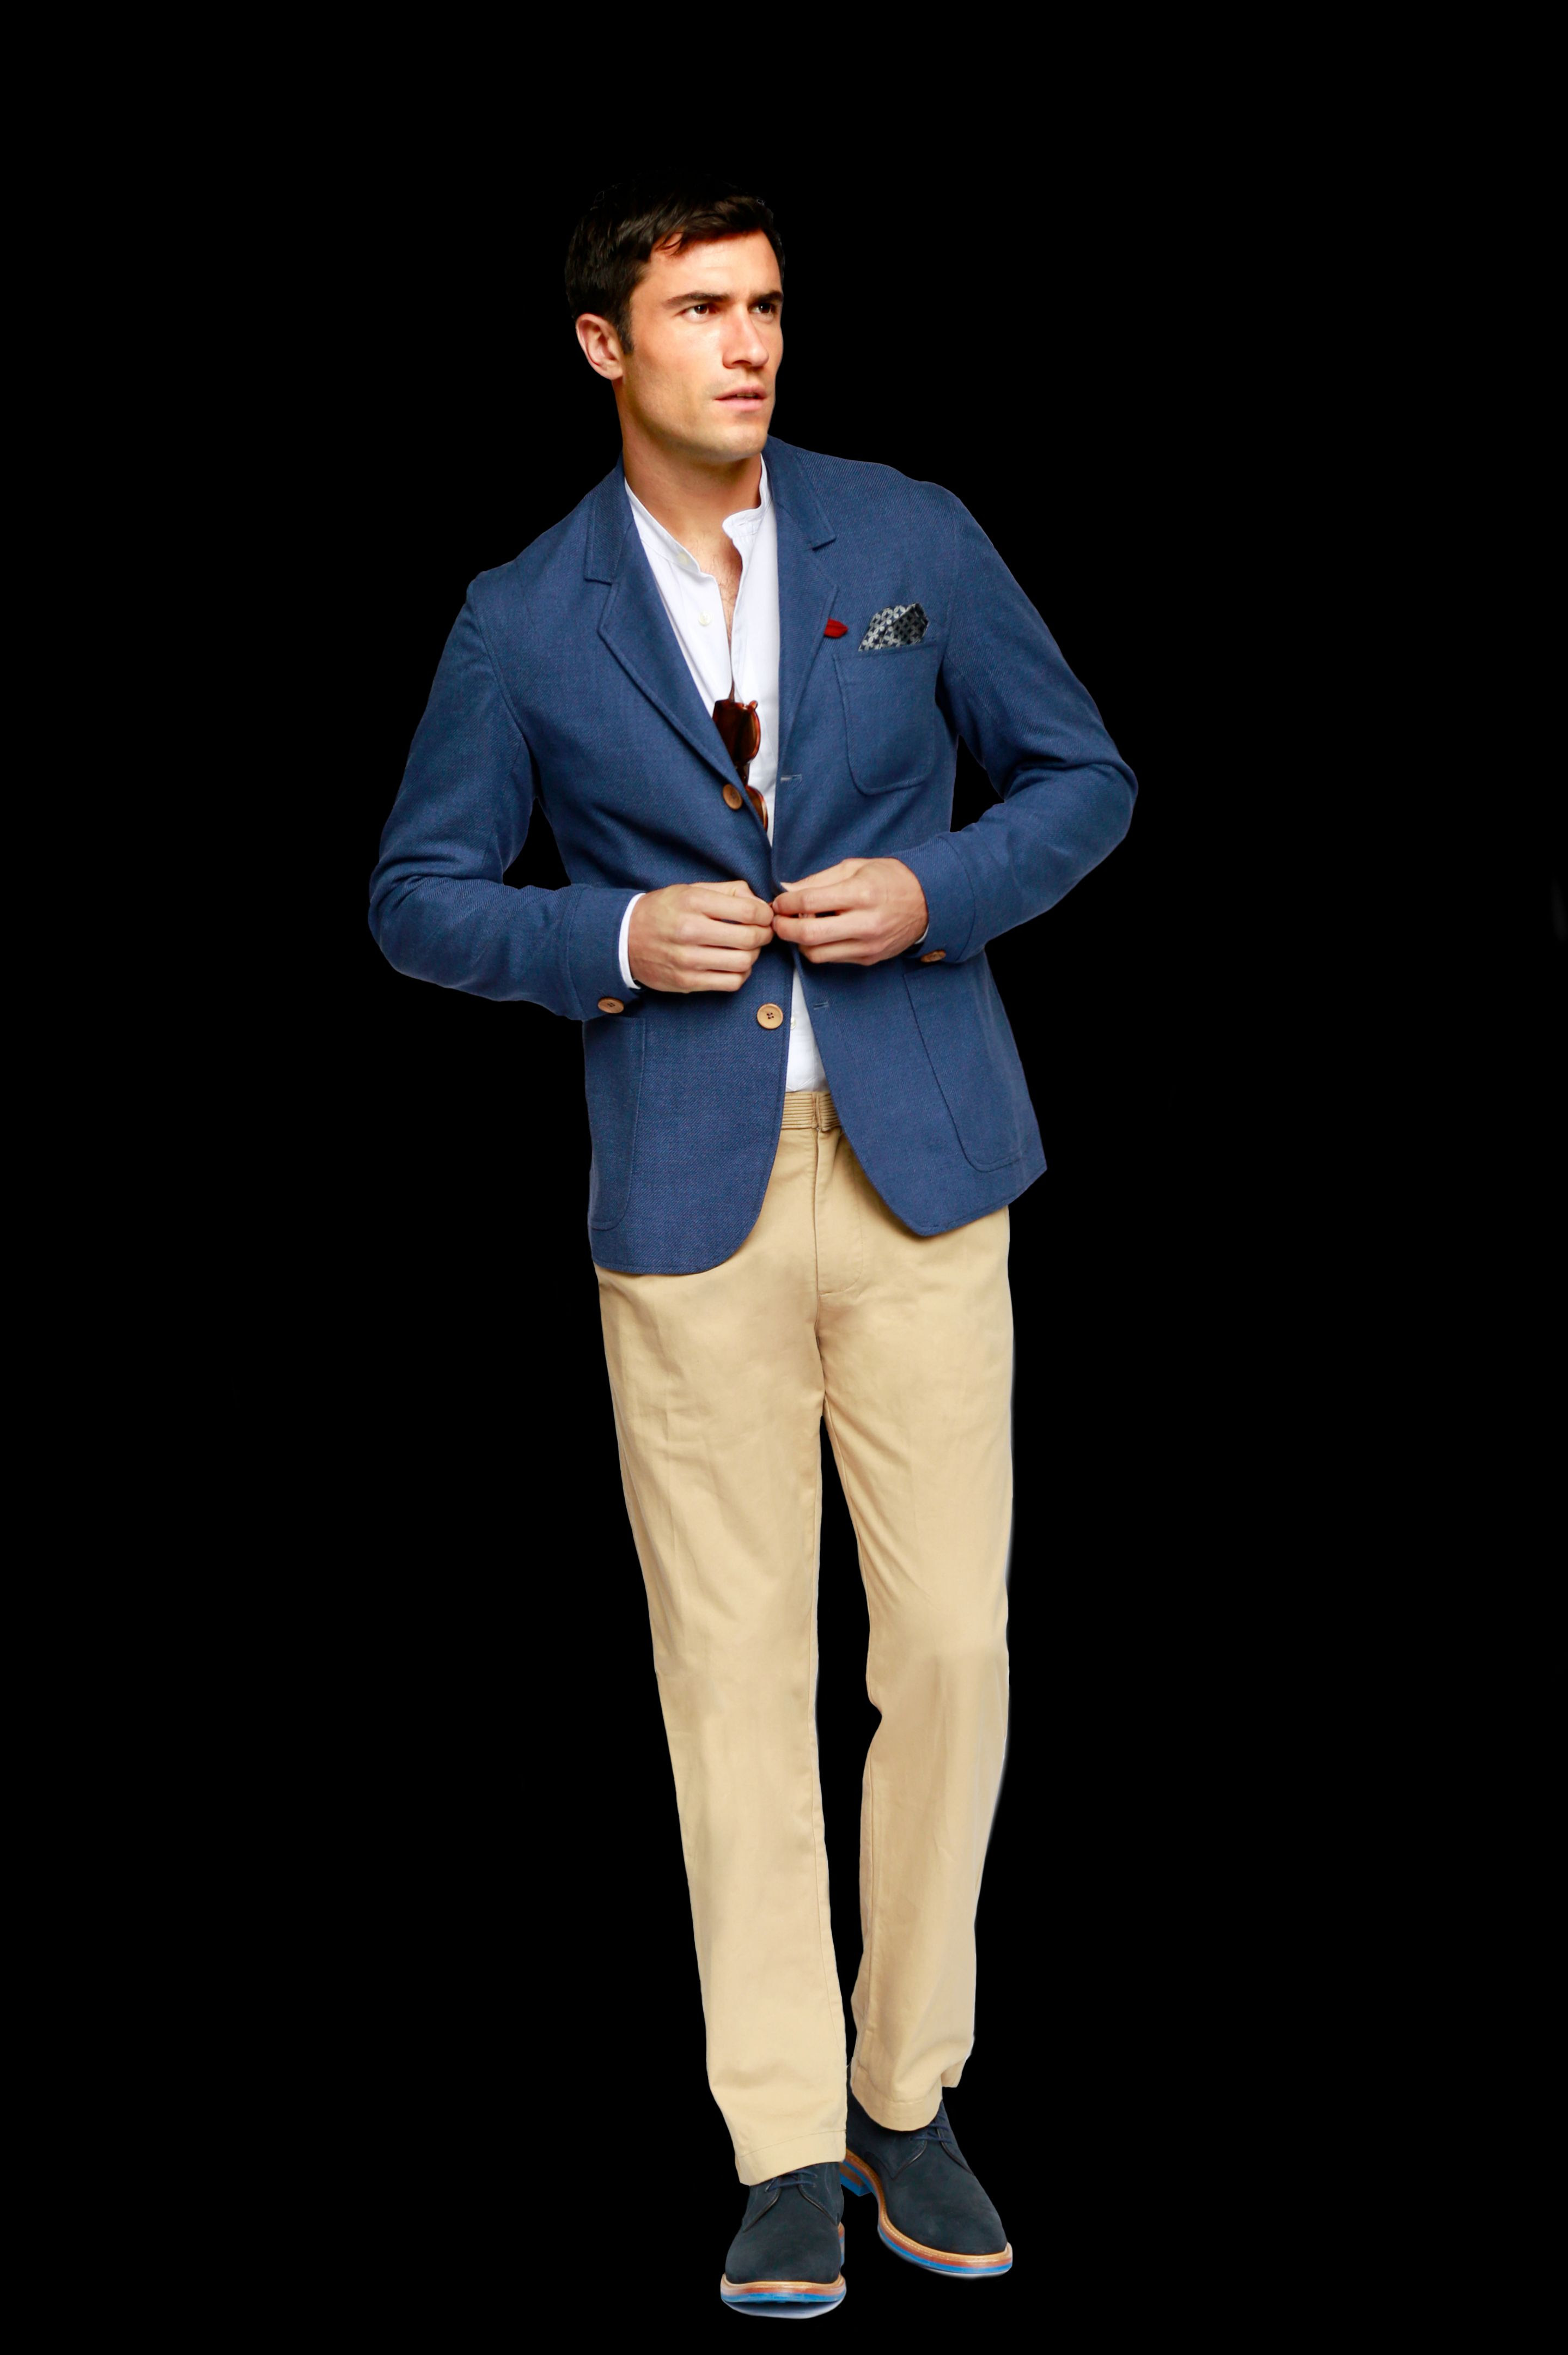 the best wedding suits for men summer edition